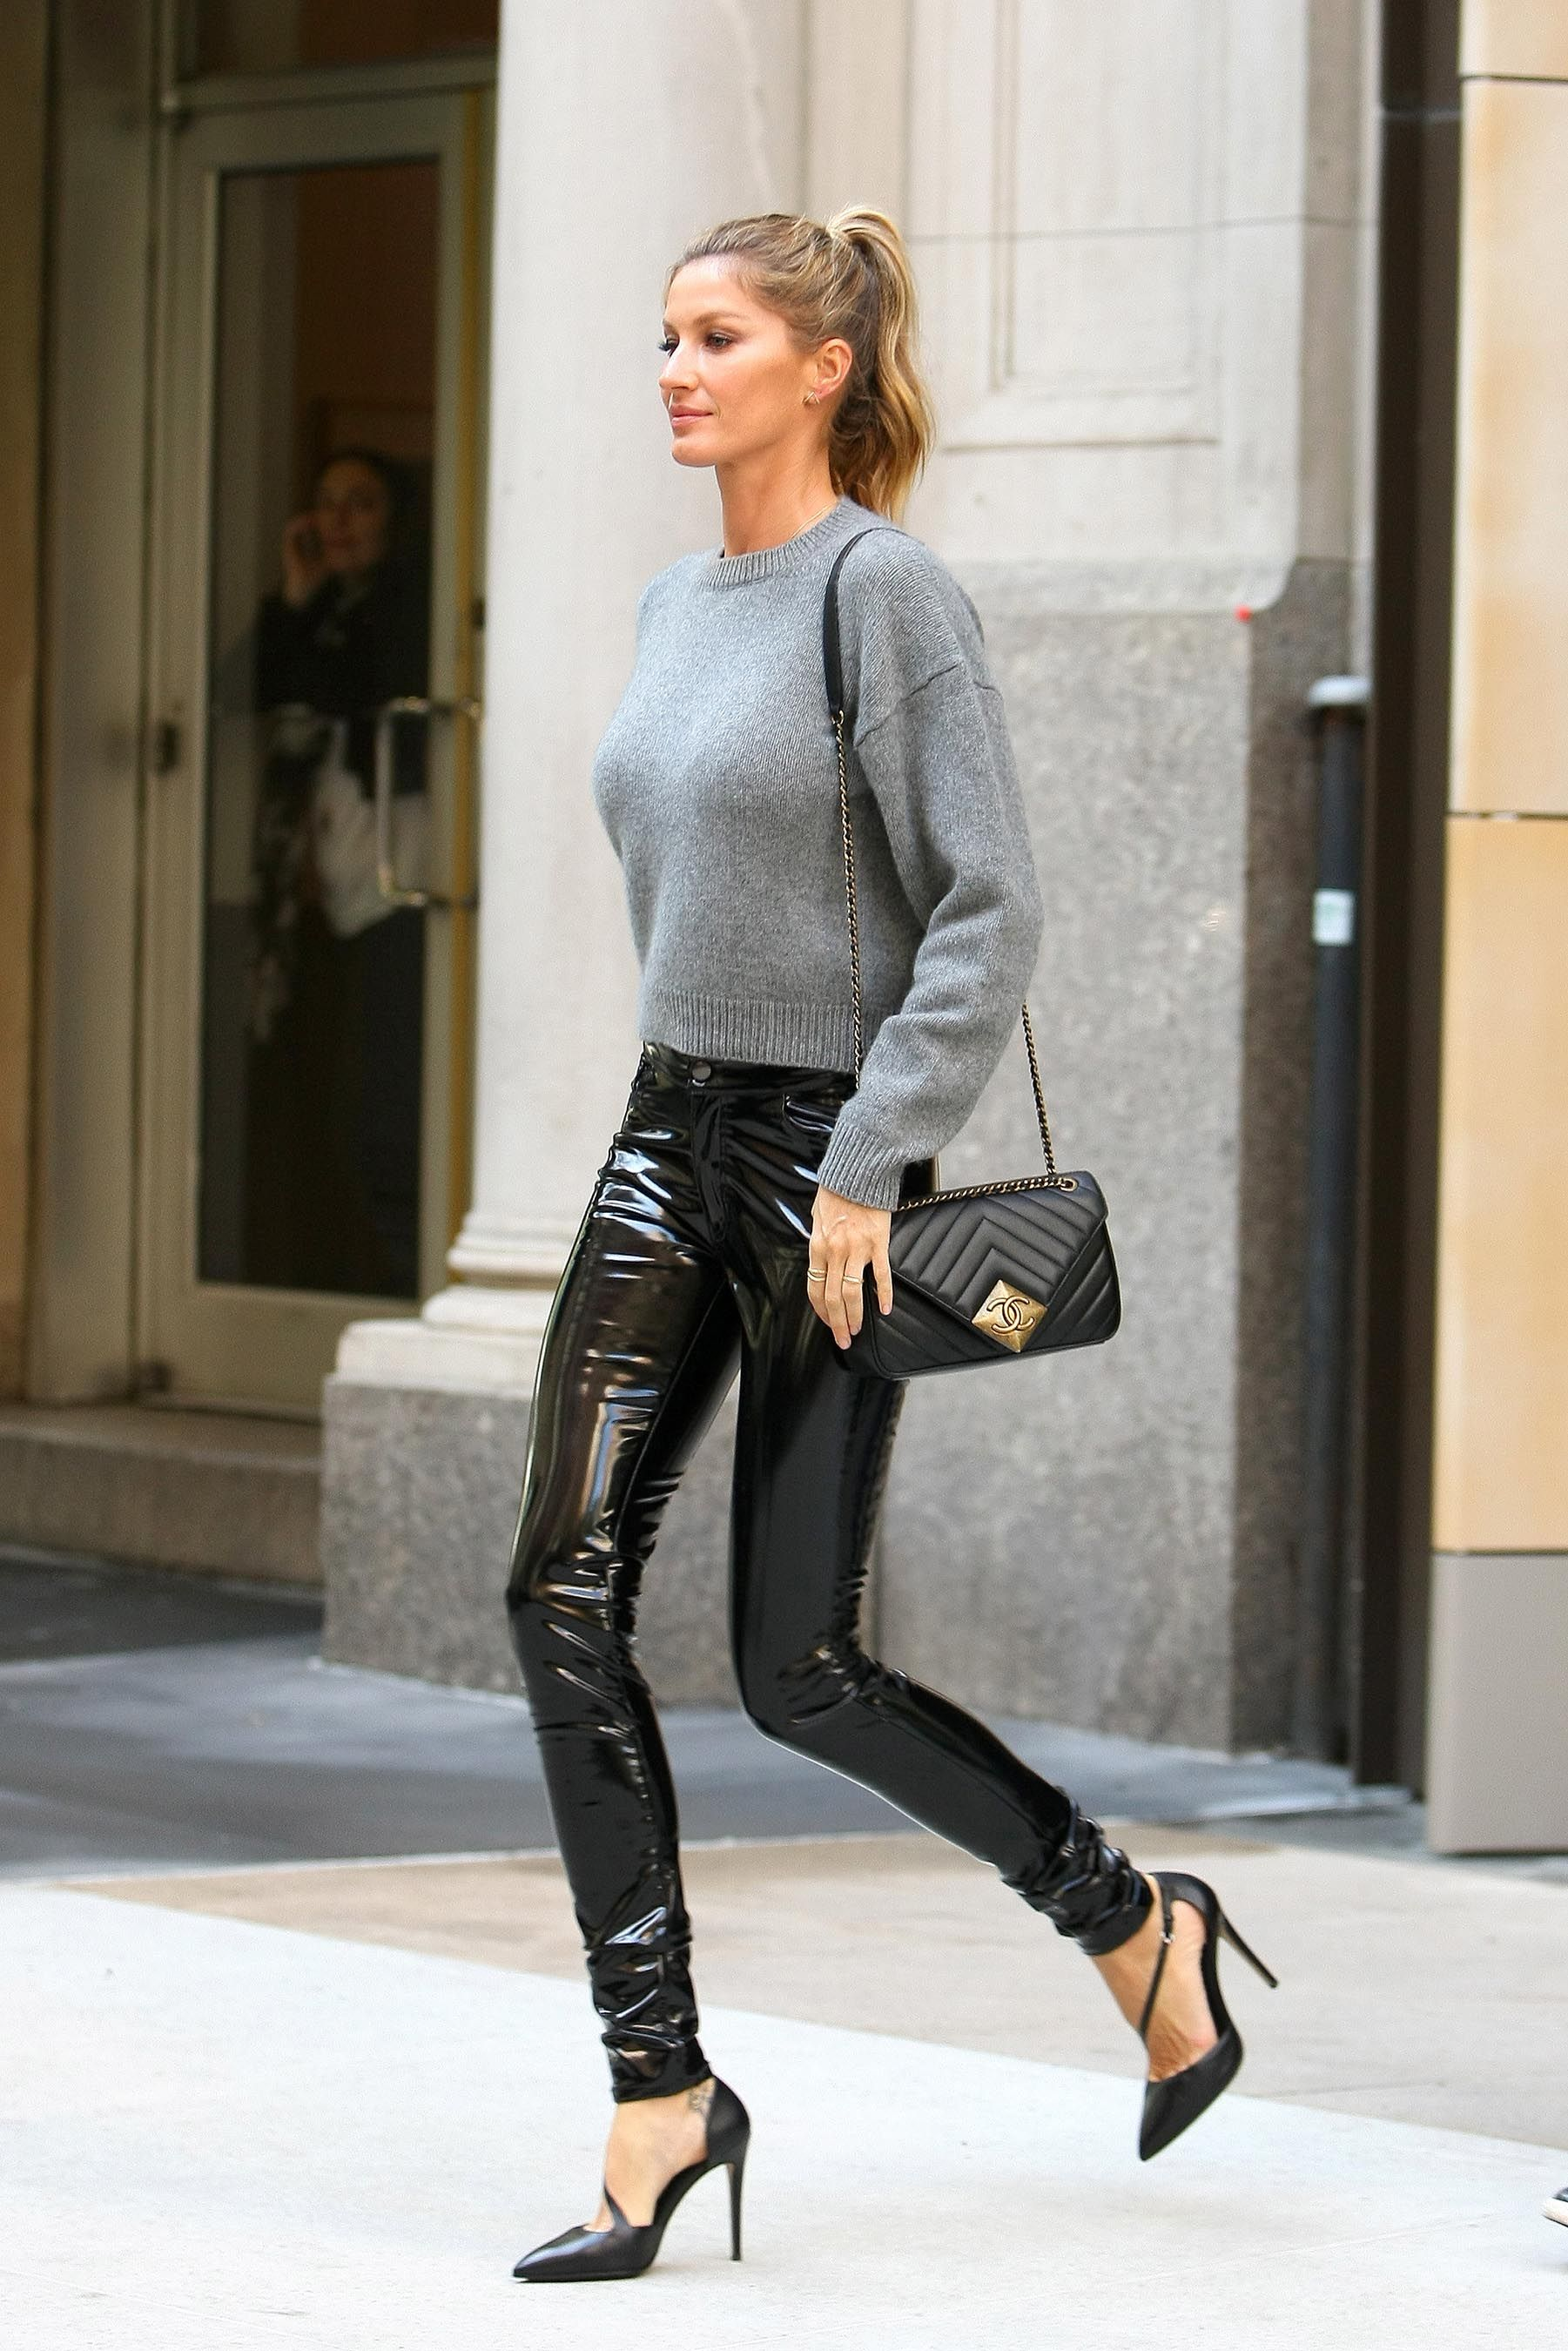 Gisele Sports Buzz Cut, Leather Boots for New BalenciagaCampaign